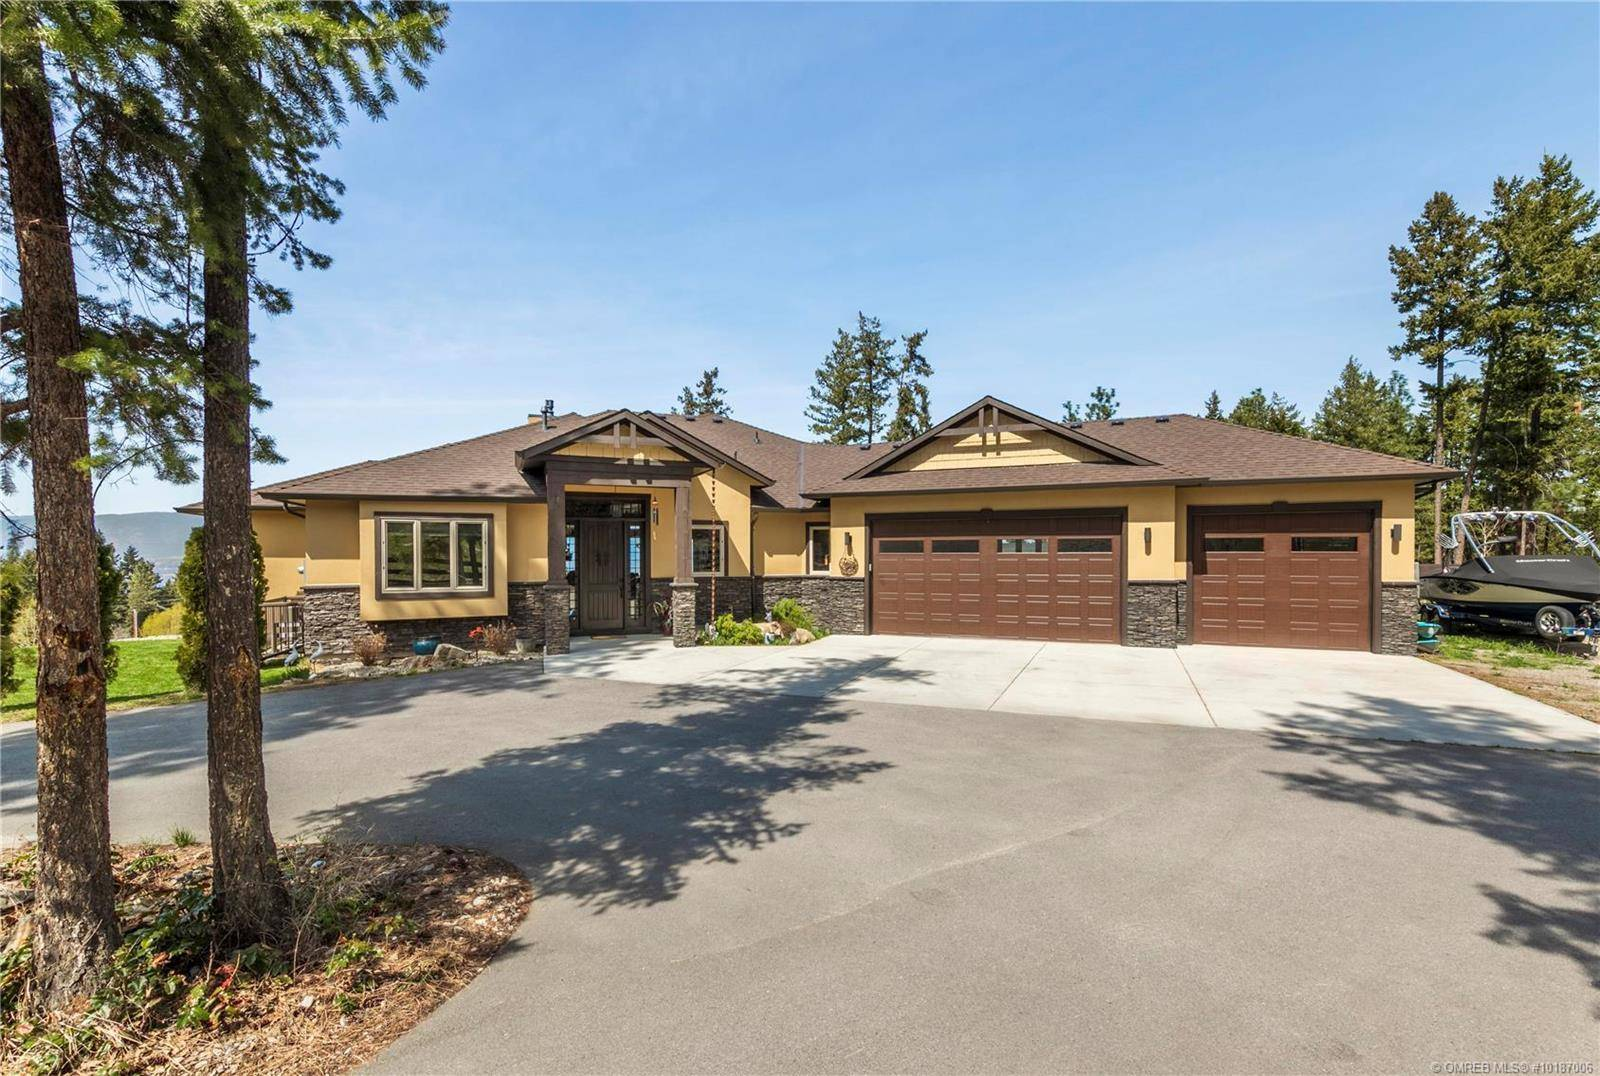 House for sale at 4531 Gaspardone Rd Kelowna British Columbia - MLS: 10187006